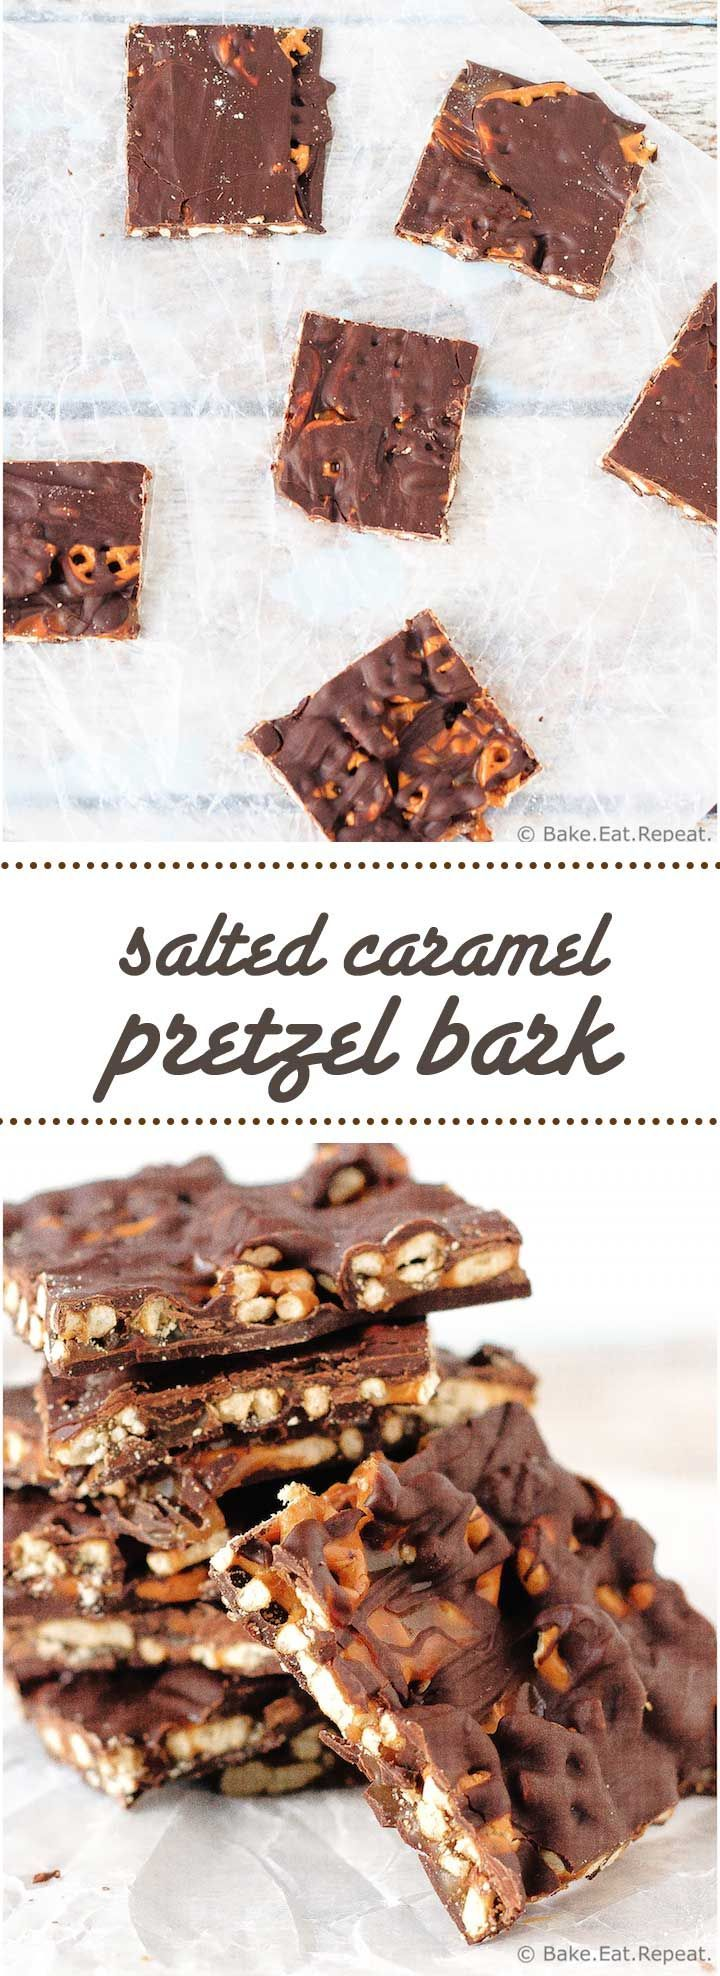 Salted Caramel Pretzel Bark - Easy to make salted caramel pretzel bark that is the perfect decadent treat or gift for Christmas. This stuff is just incredible - sweet, salty, perfect.: